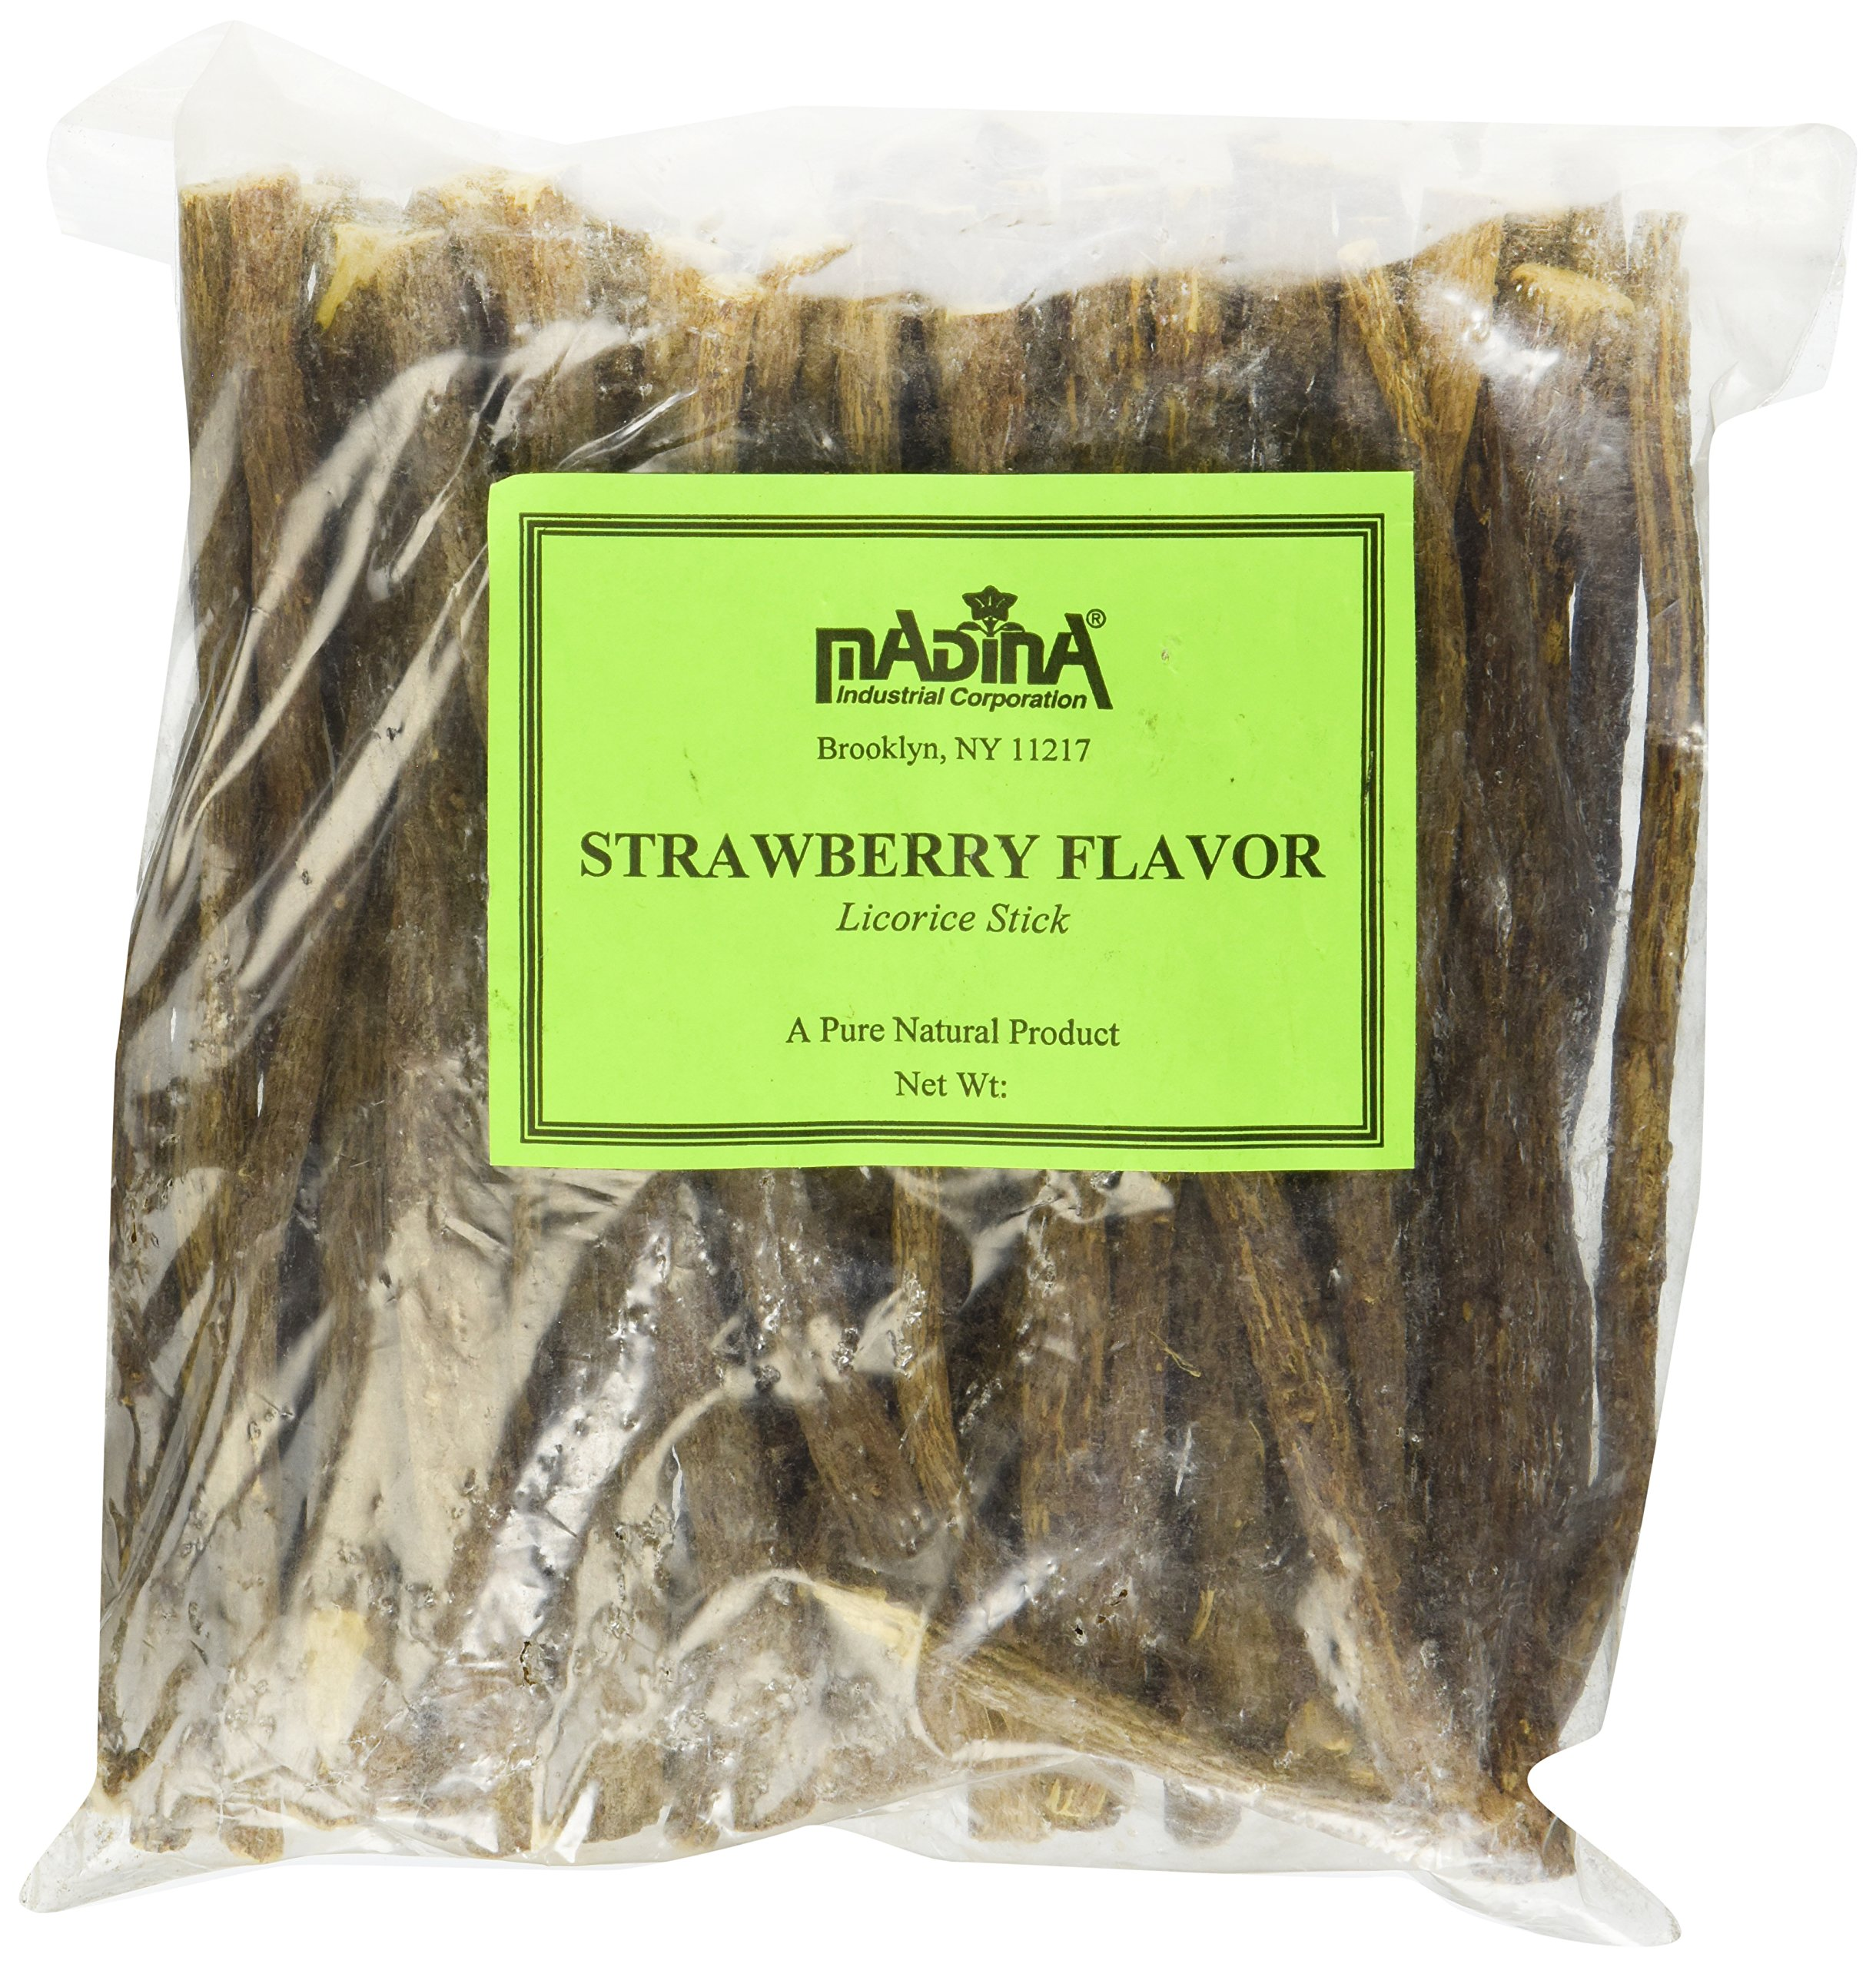 Madina Licorice Stick Strawberry Flavor 1lb